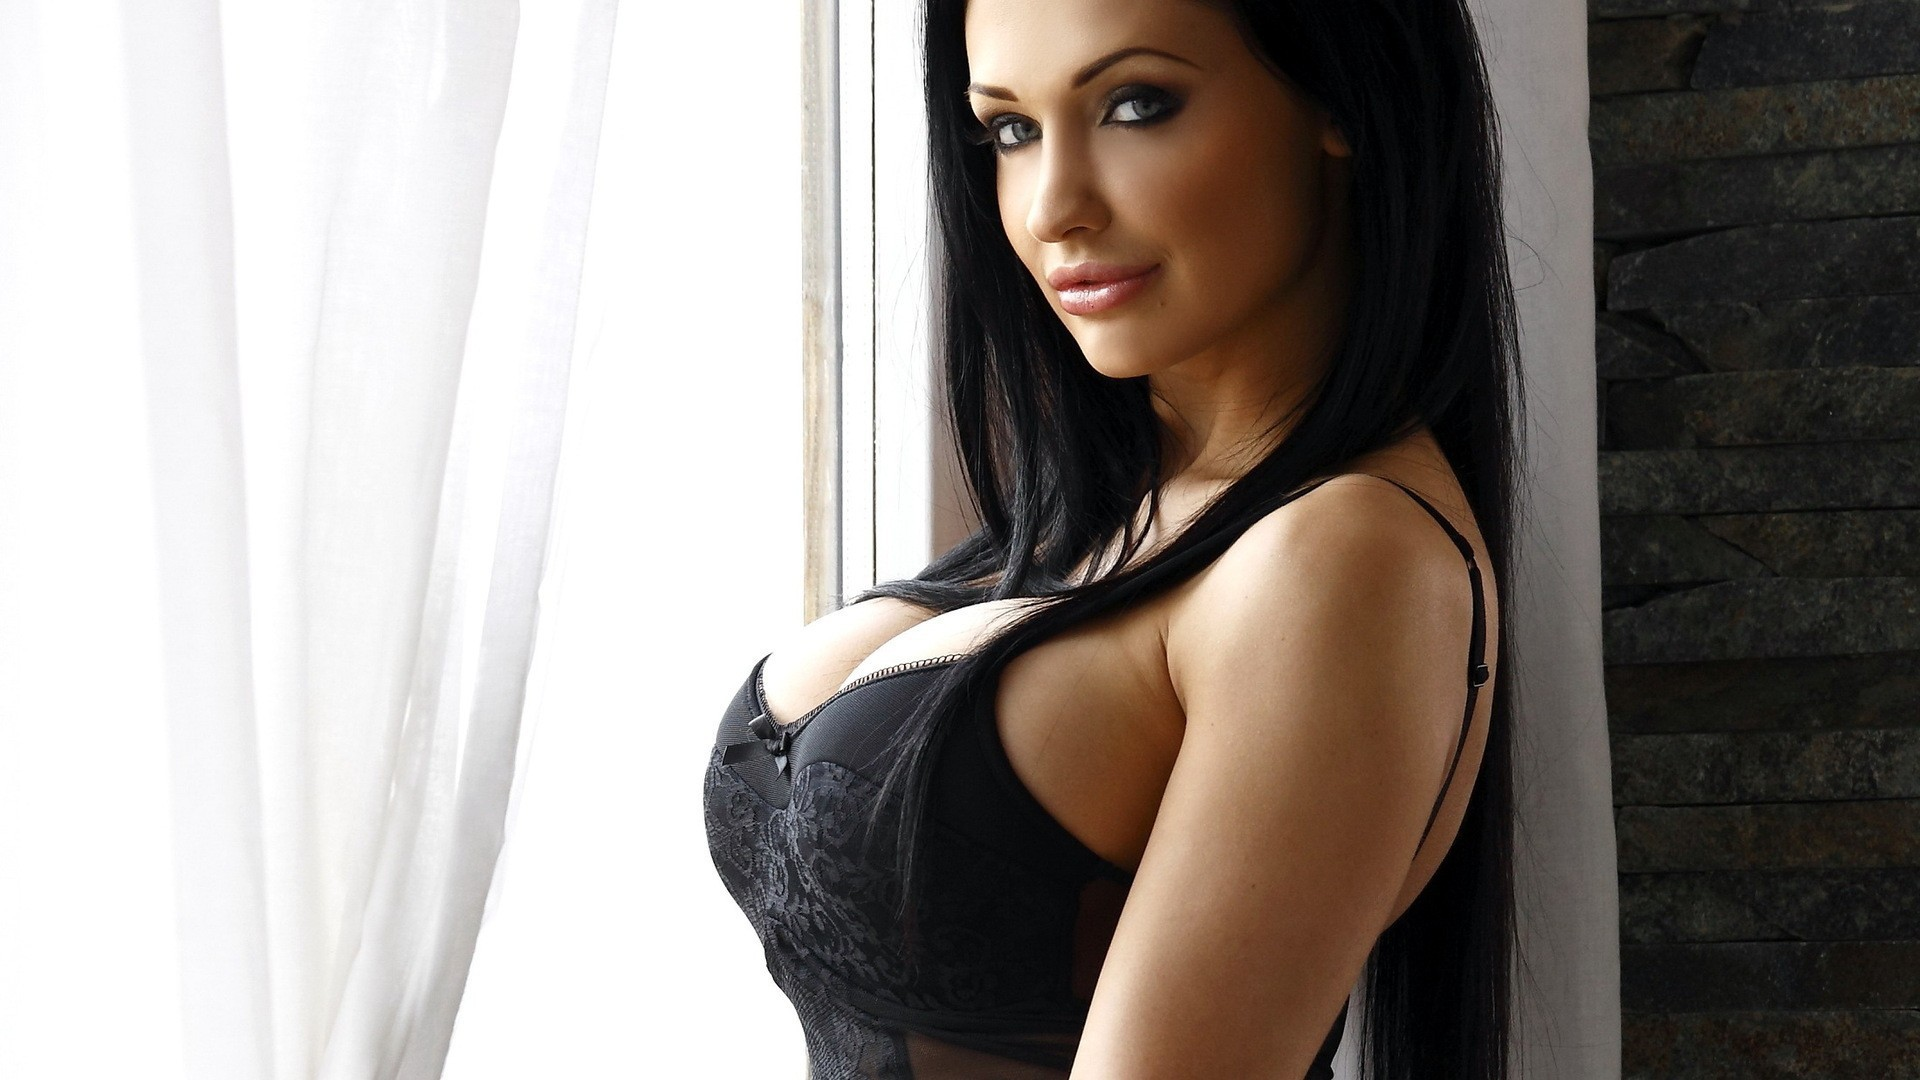 Aletta Ocean Sexy Images